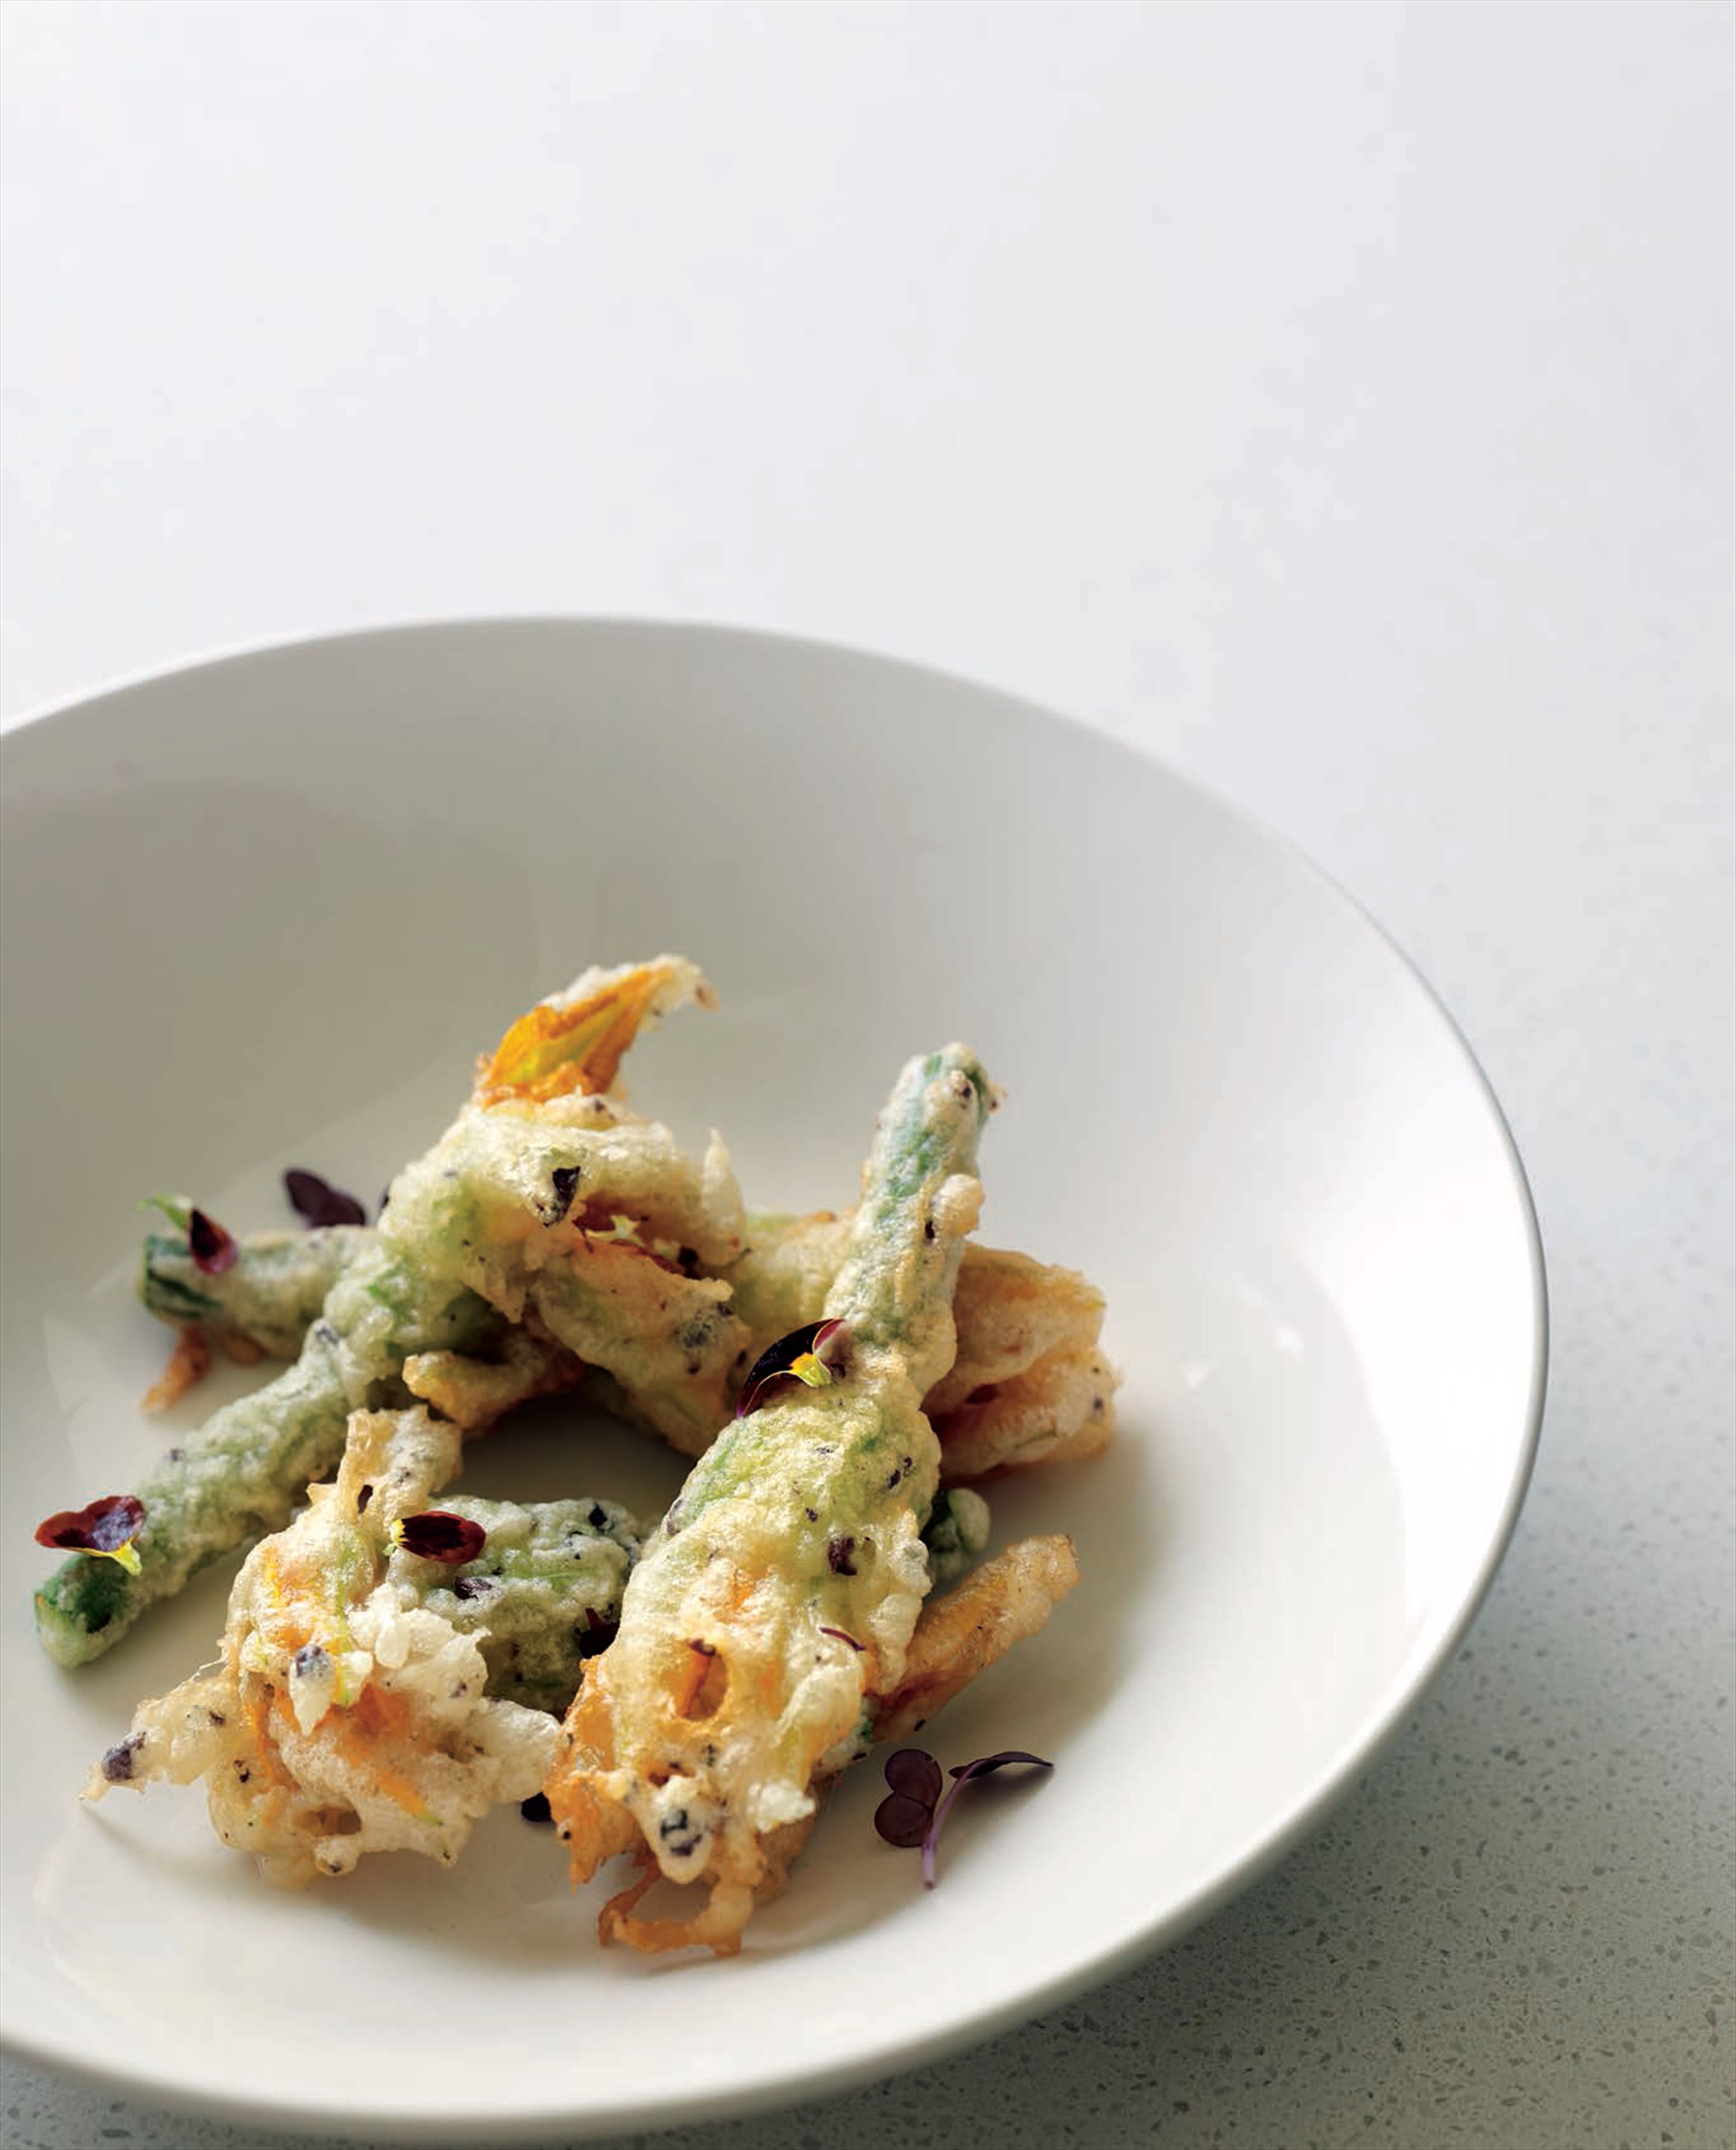 Crunchy zucchini flowers stuffed with haloumi, mint and ginger